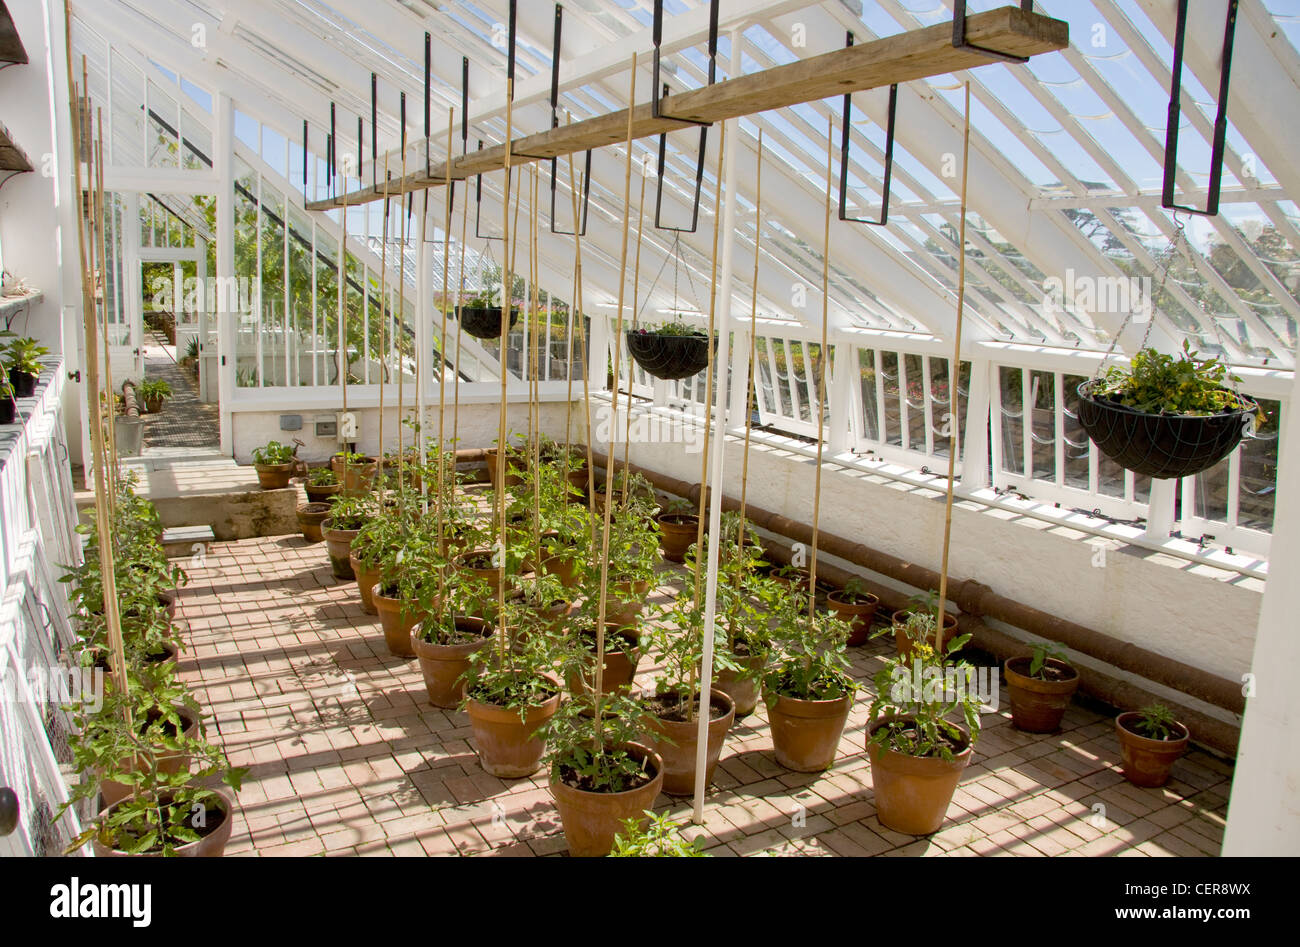 Interior of a greenhouse with potted plants in the Lost Gardens of Heligan in Cornwall. - Stock Image